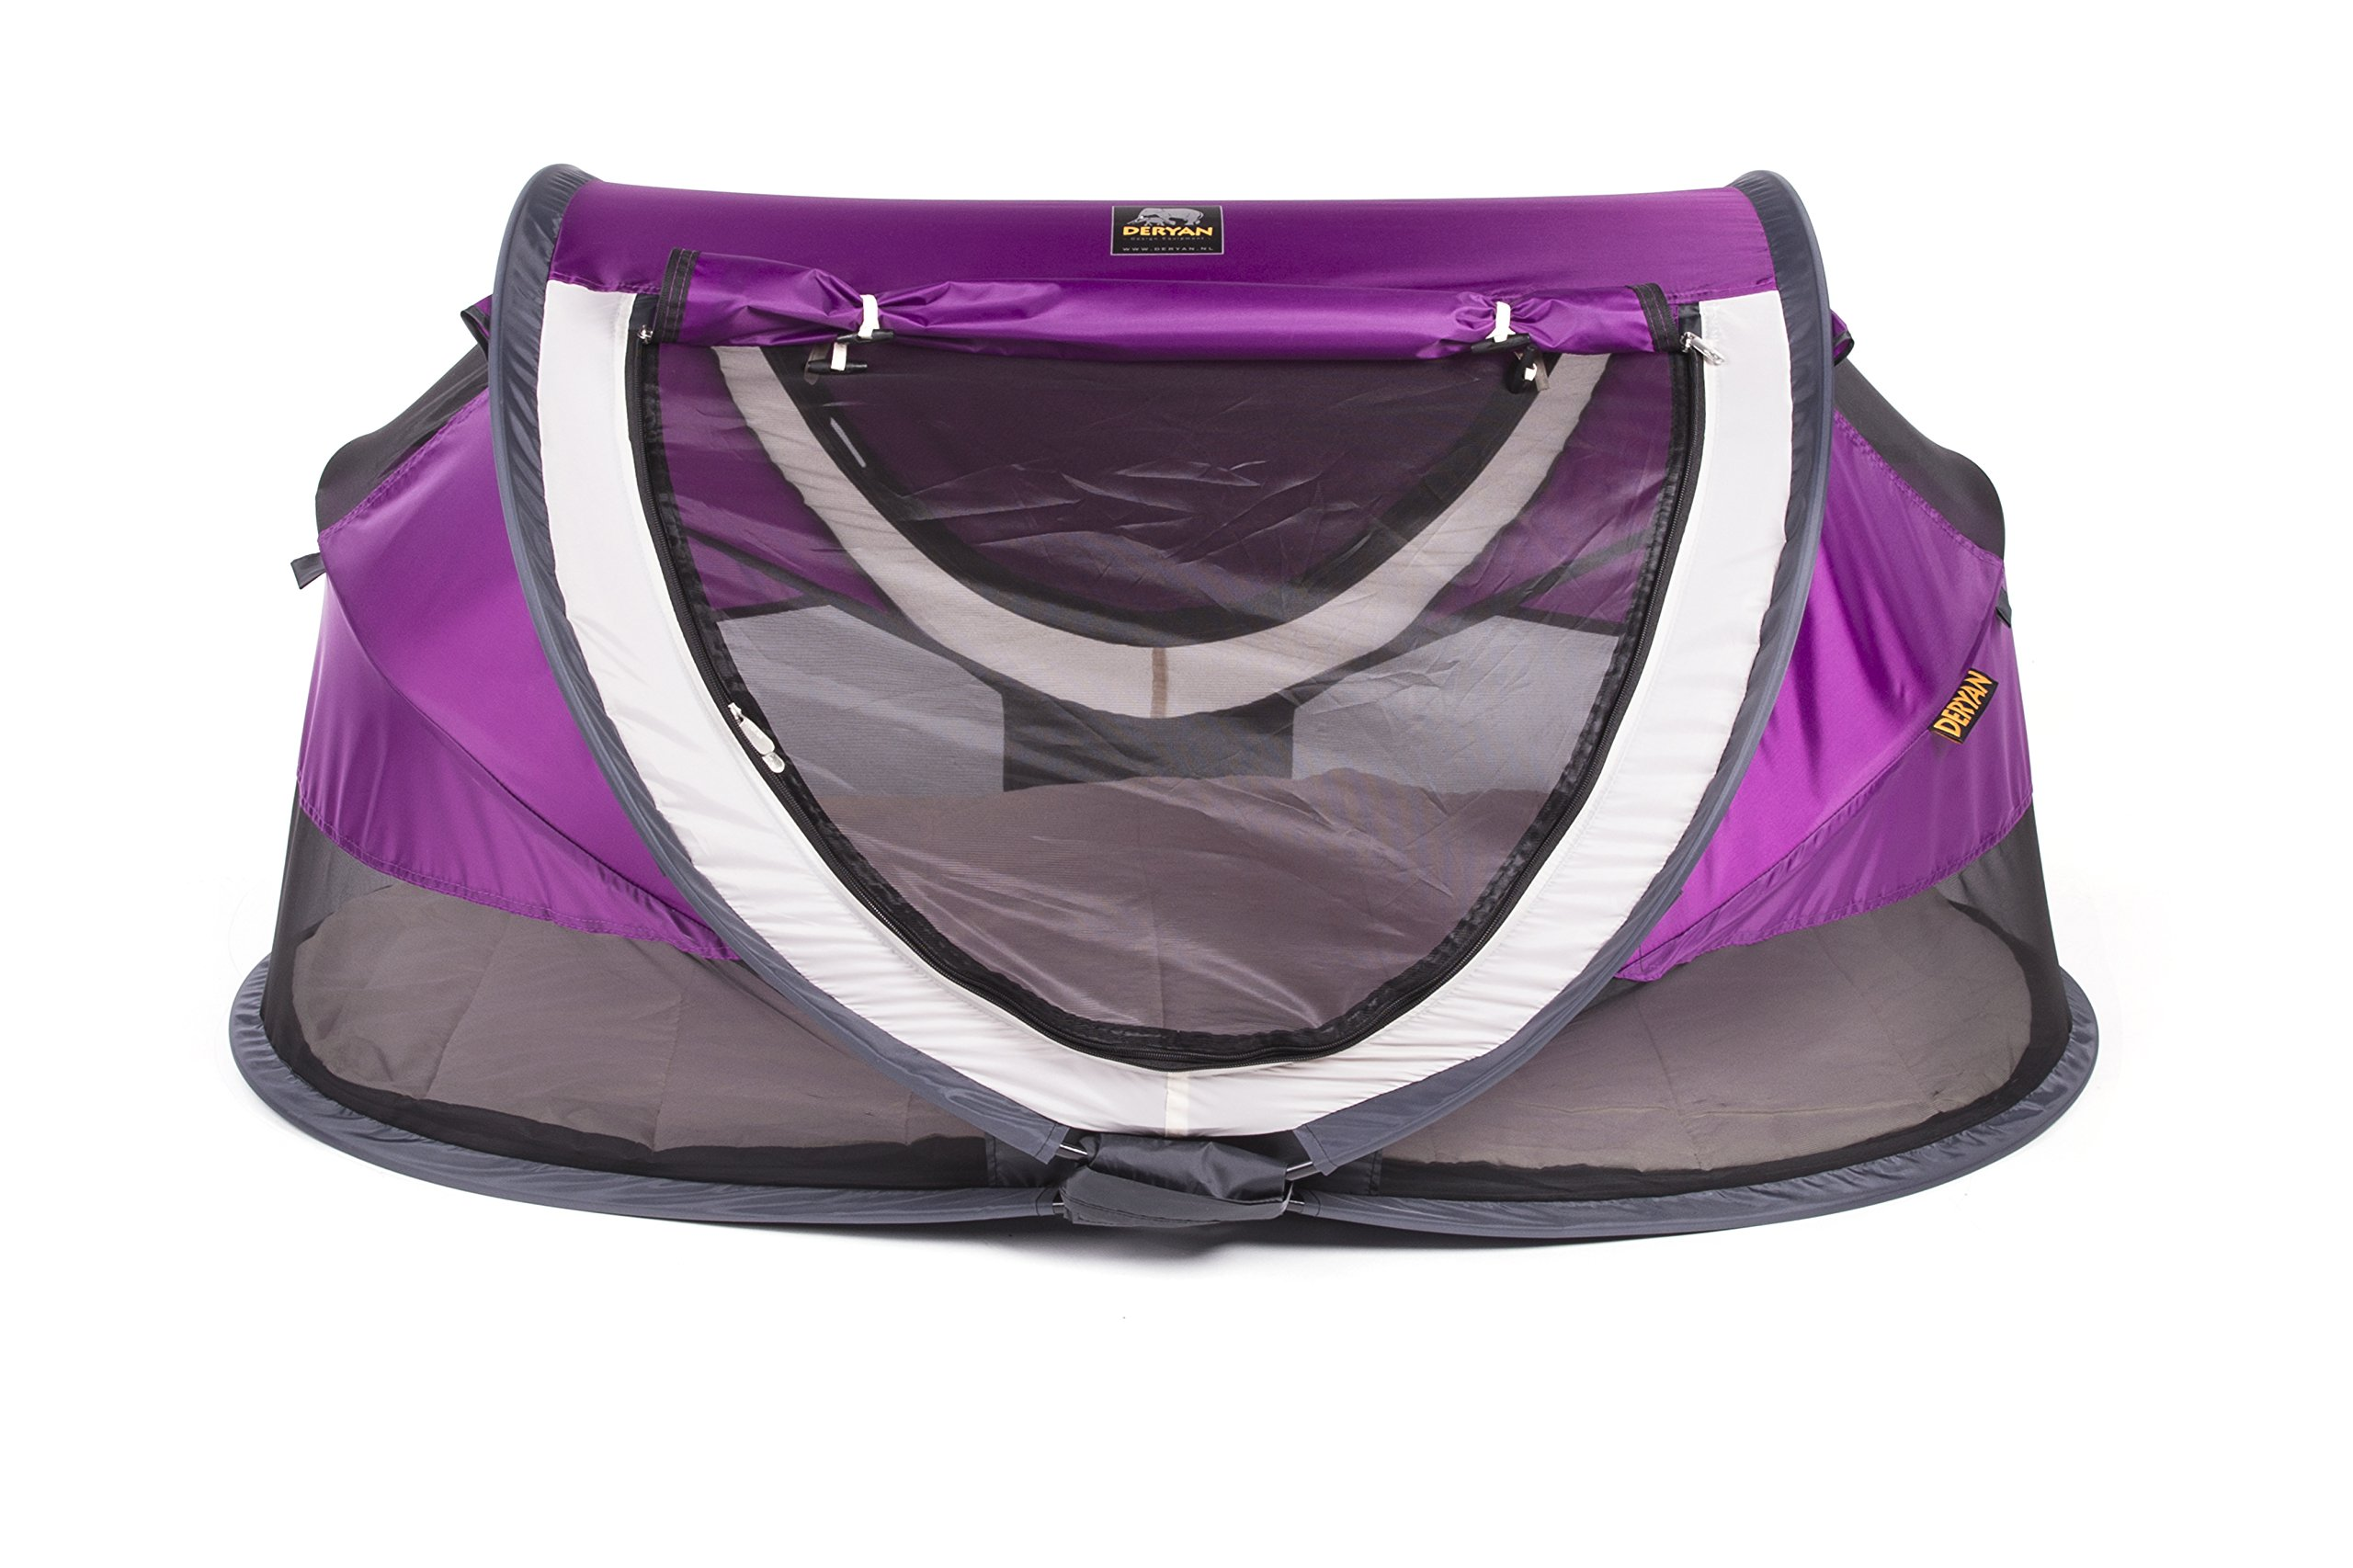 Travel Cot Peuter Luxe (Purple) Deryan 50% UV Protection and flame retardant fabric Setup in 2 seconds and a anti-musquito net  1